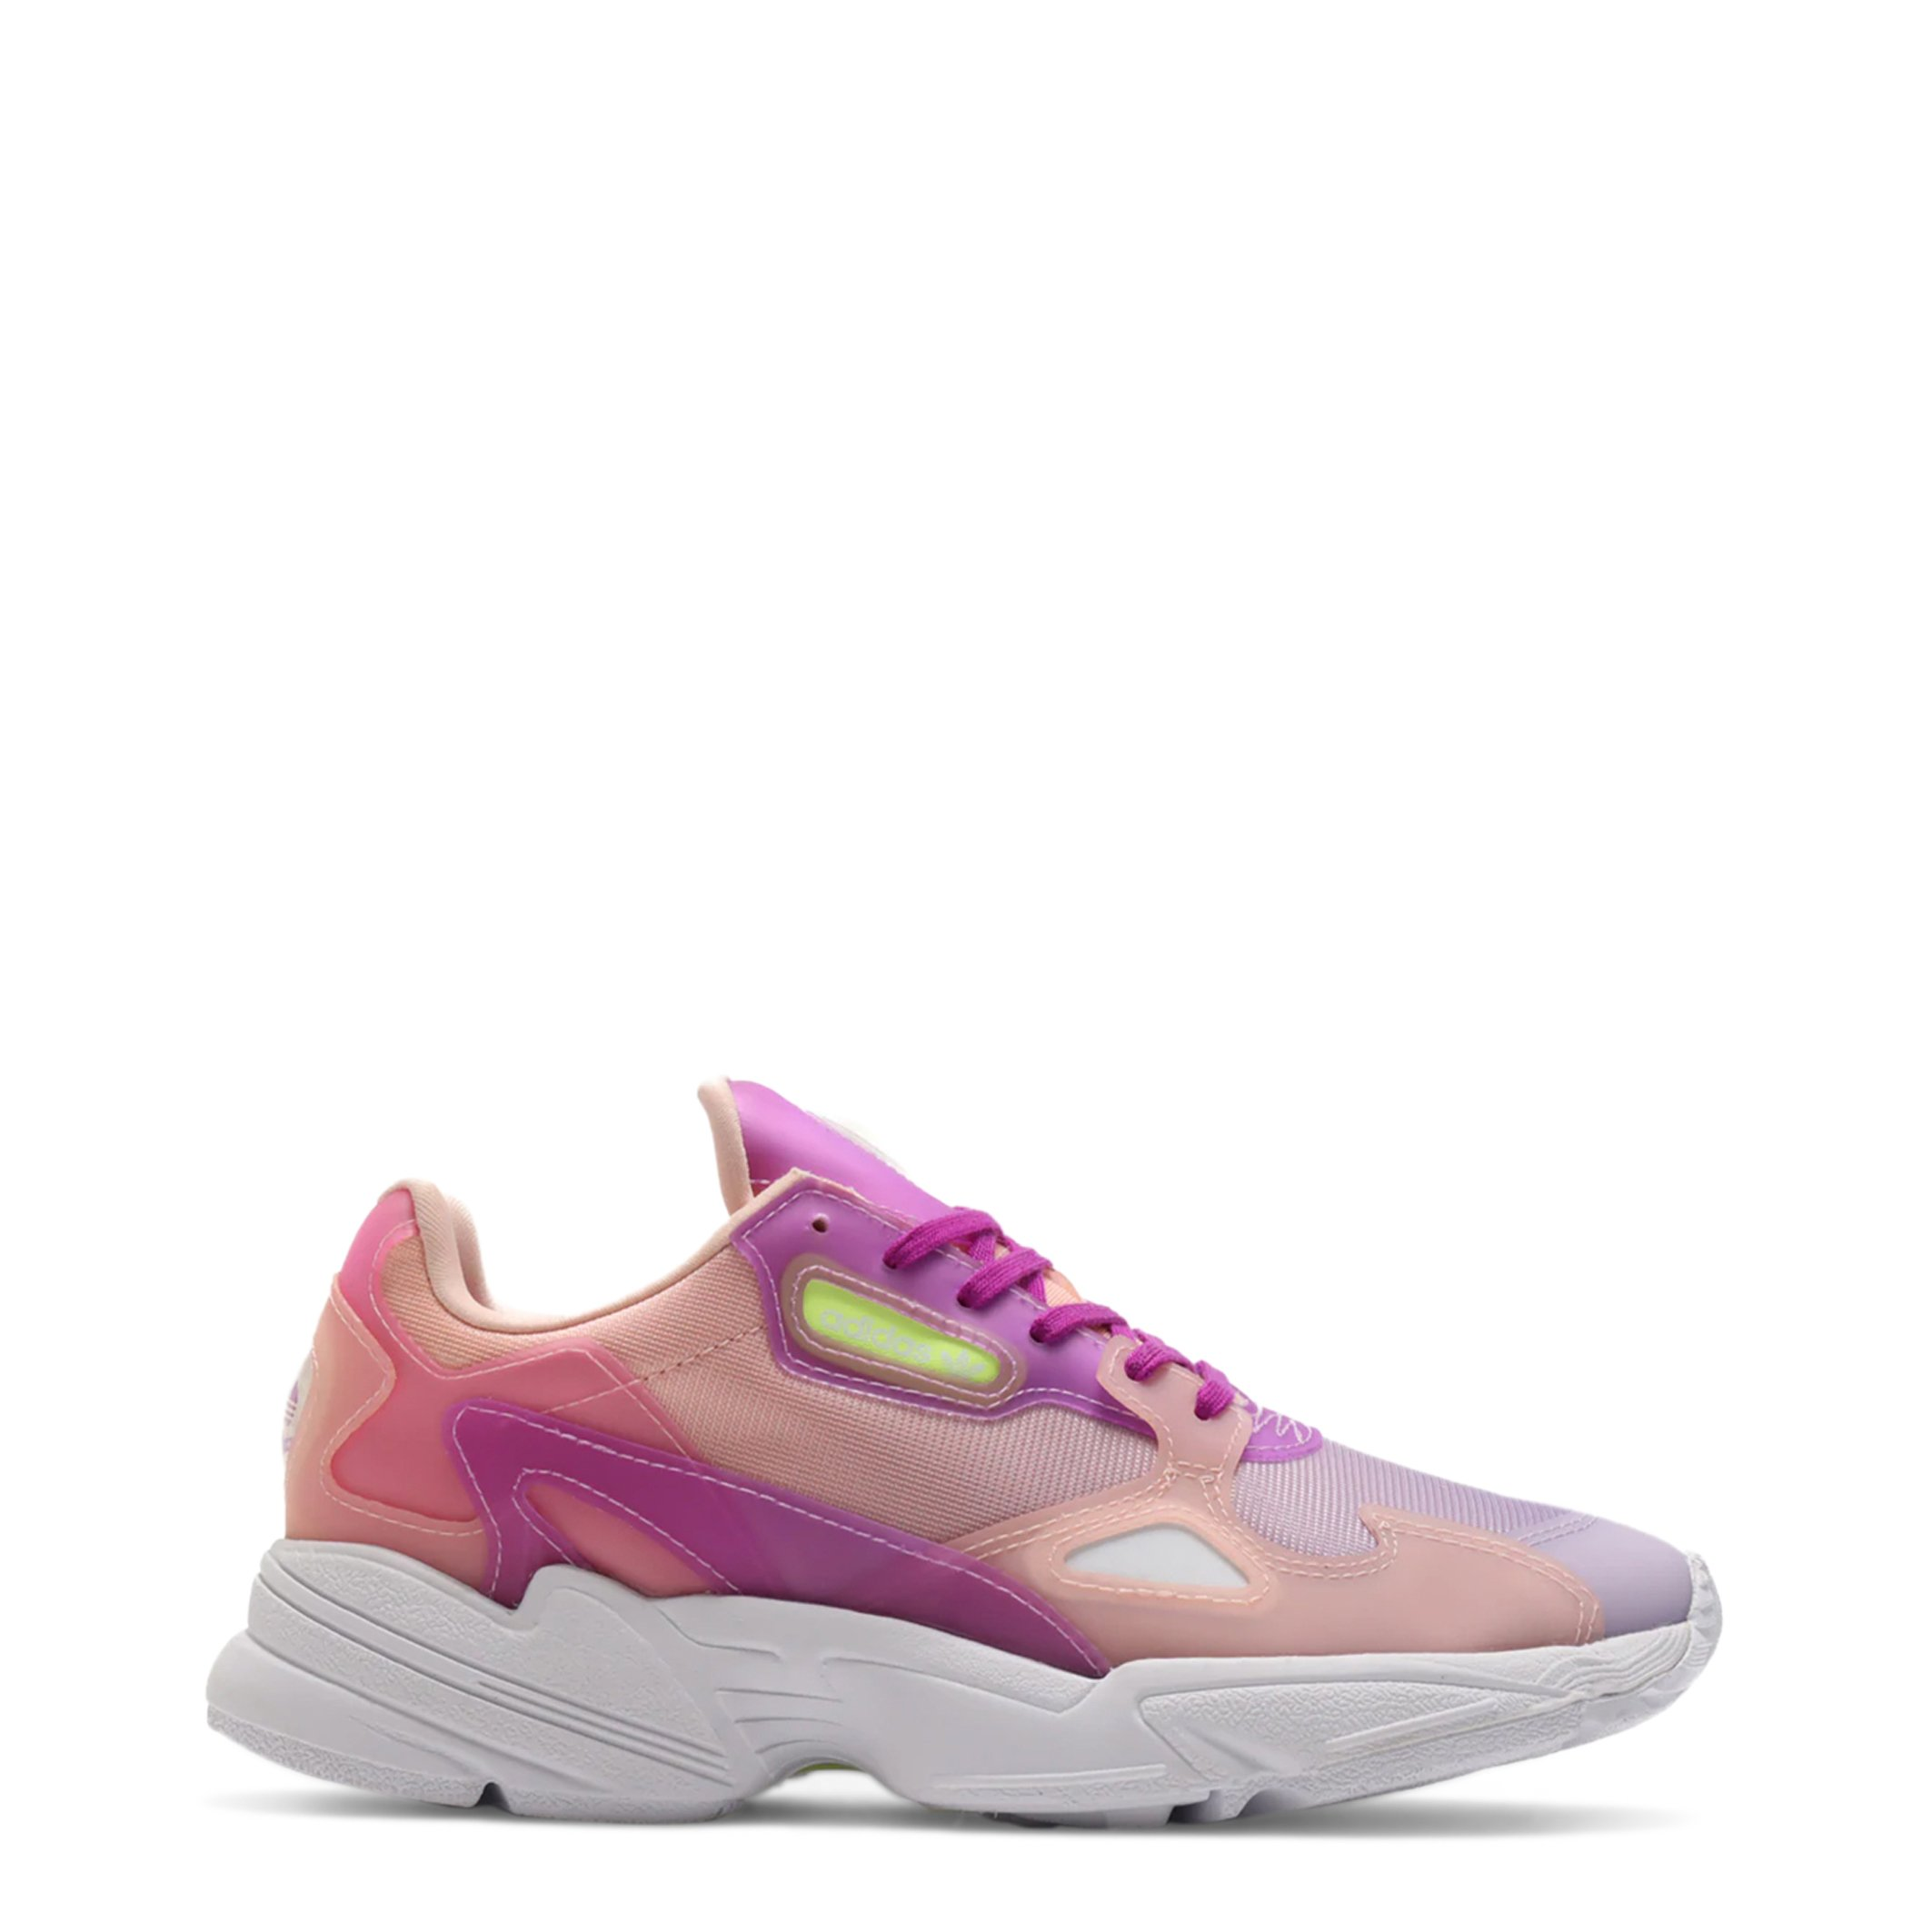 Adidas Women's Falcon Trainers Various Colours B28129 - pink UK 4.5